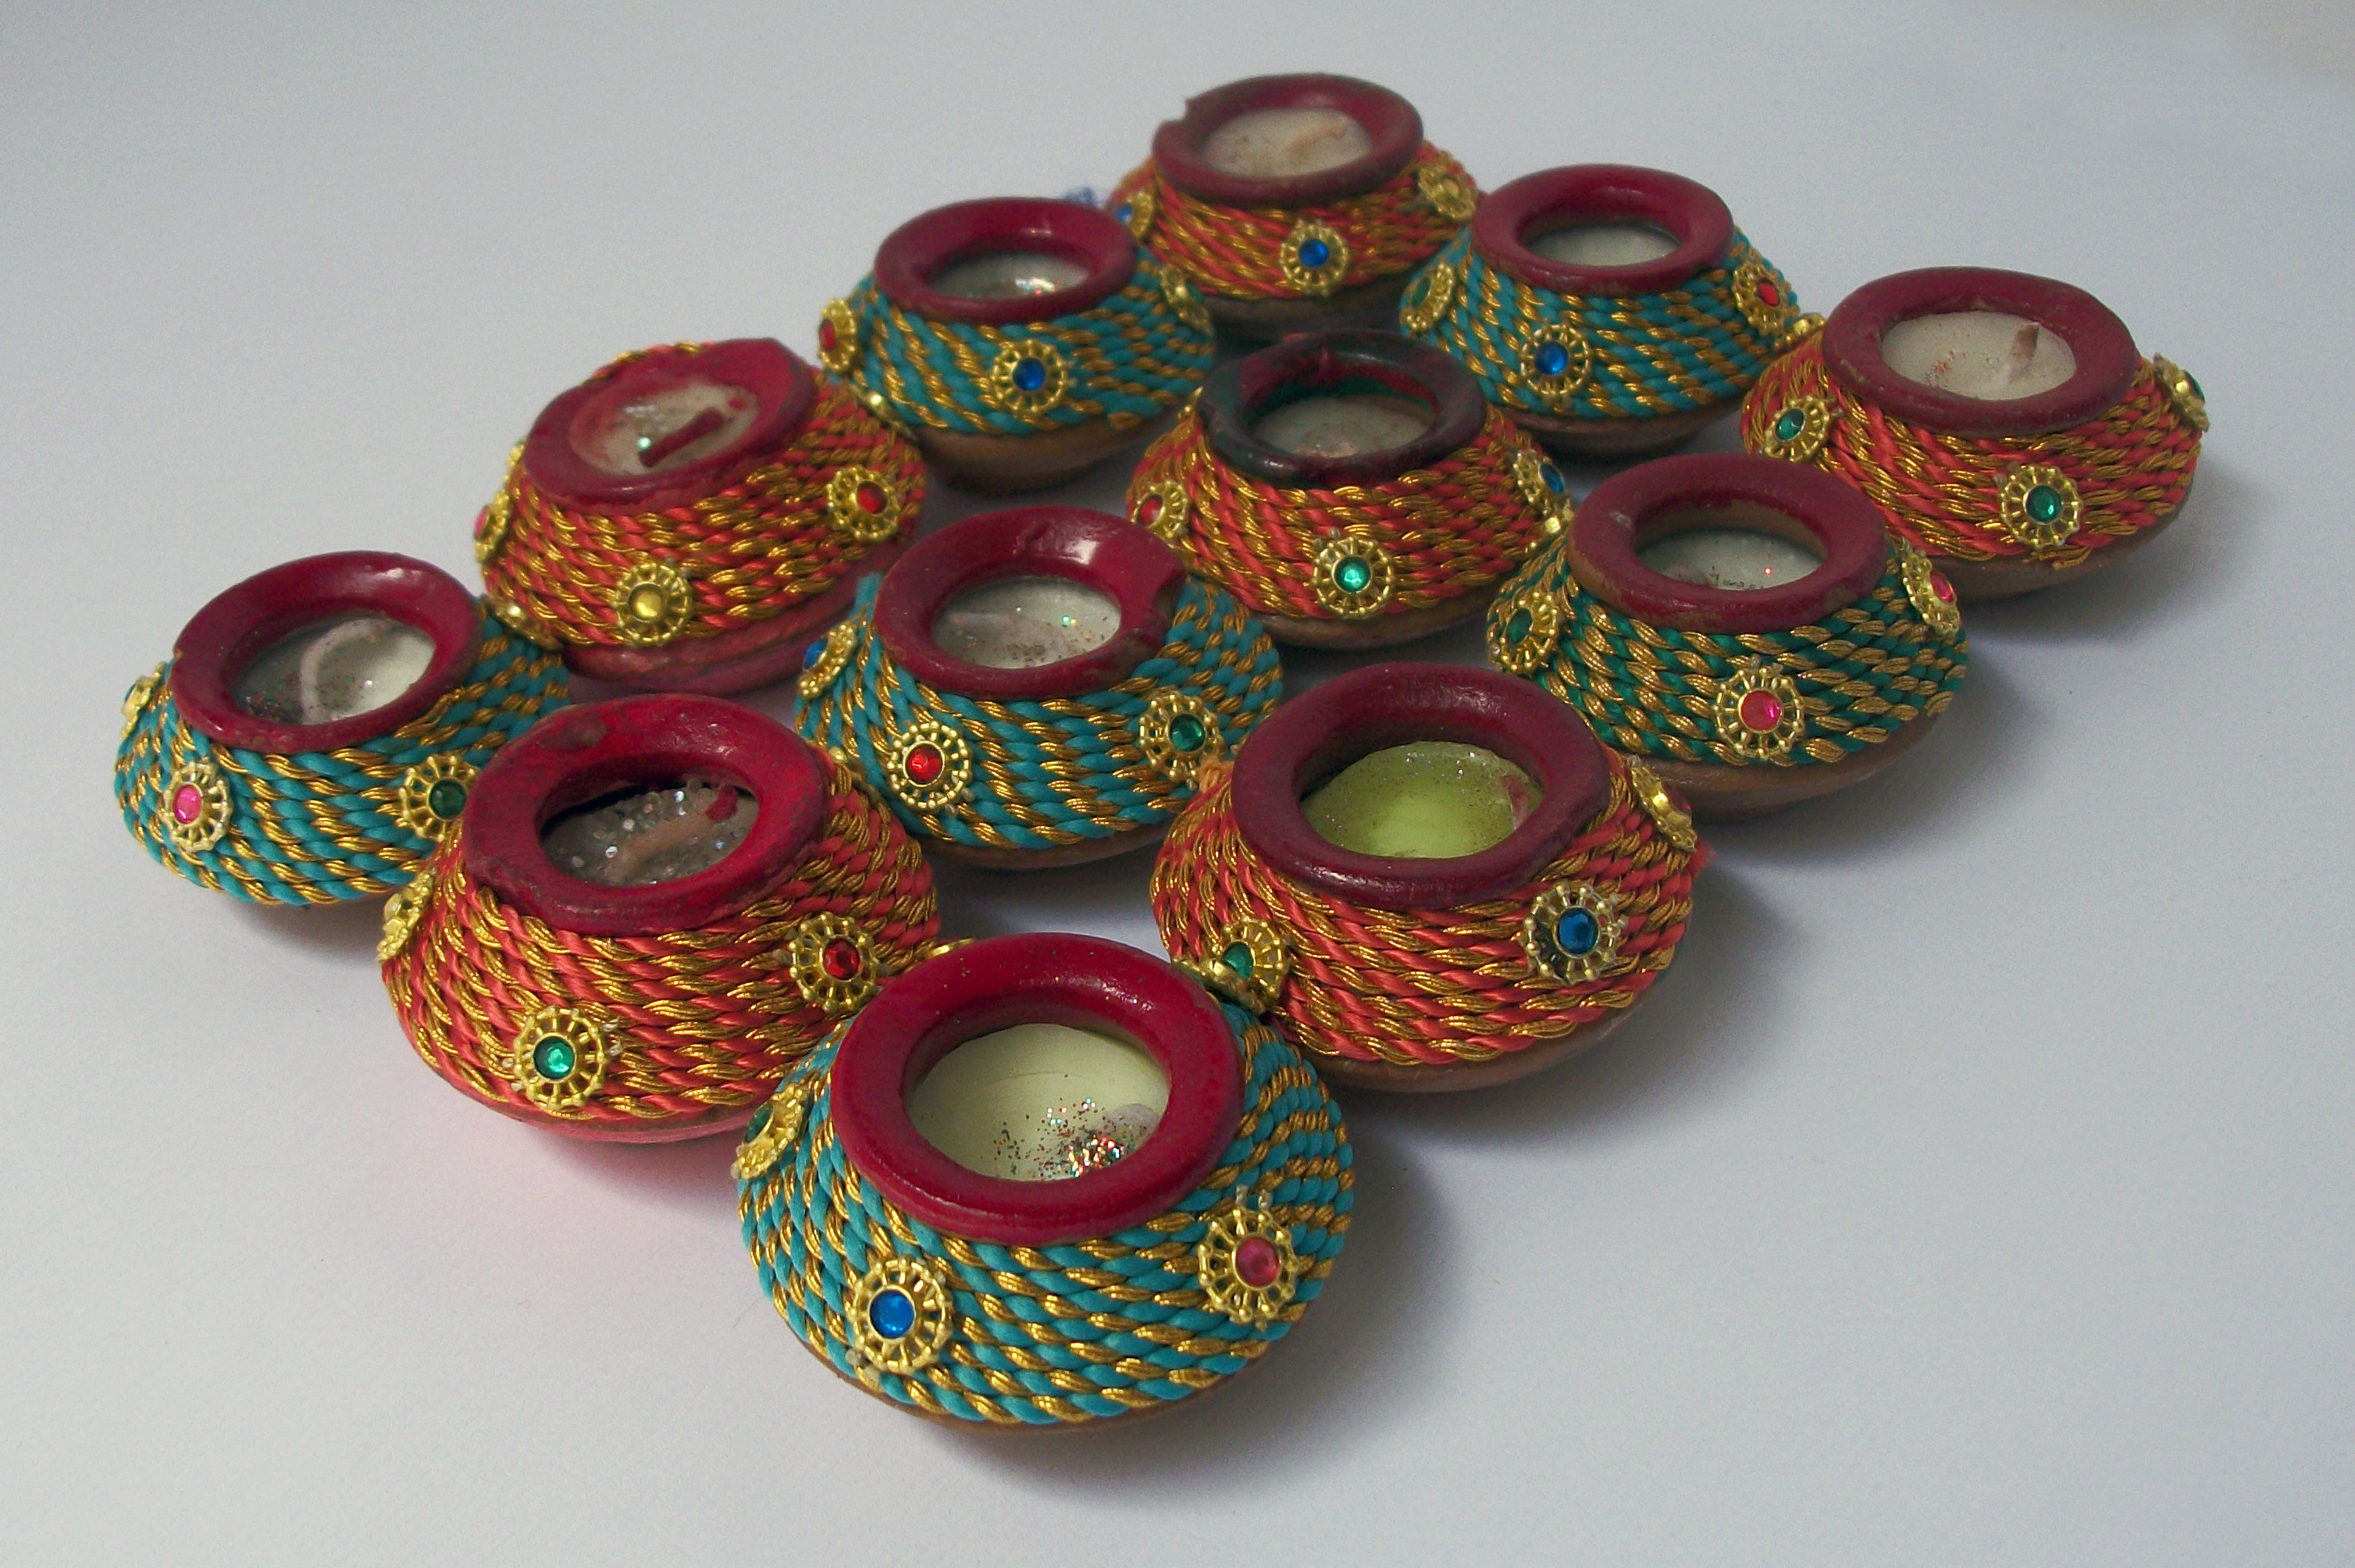 5ec12a9ce45 It is the most important decorative item in Diwali decorations as Diwali is  the festival of lights. Get beautiful crafted and colored diyas or earthen  lamps ...